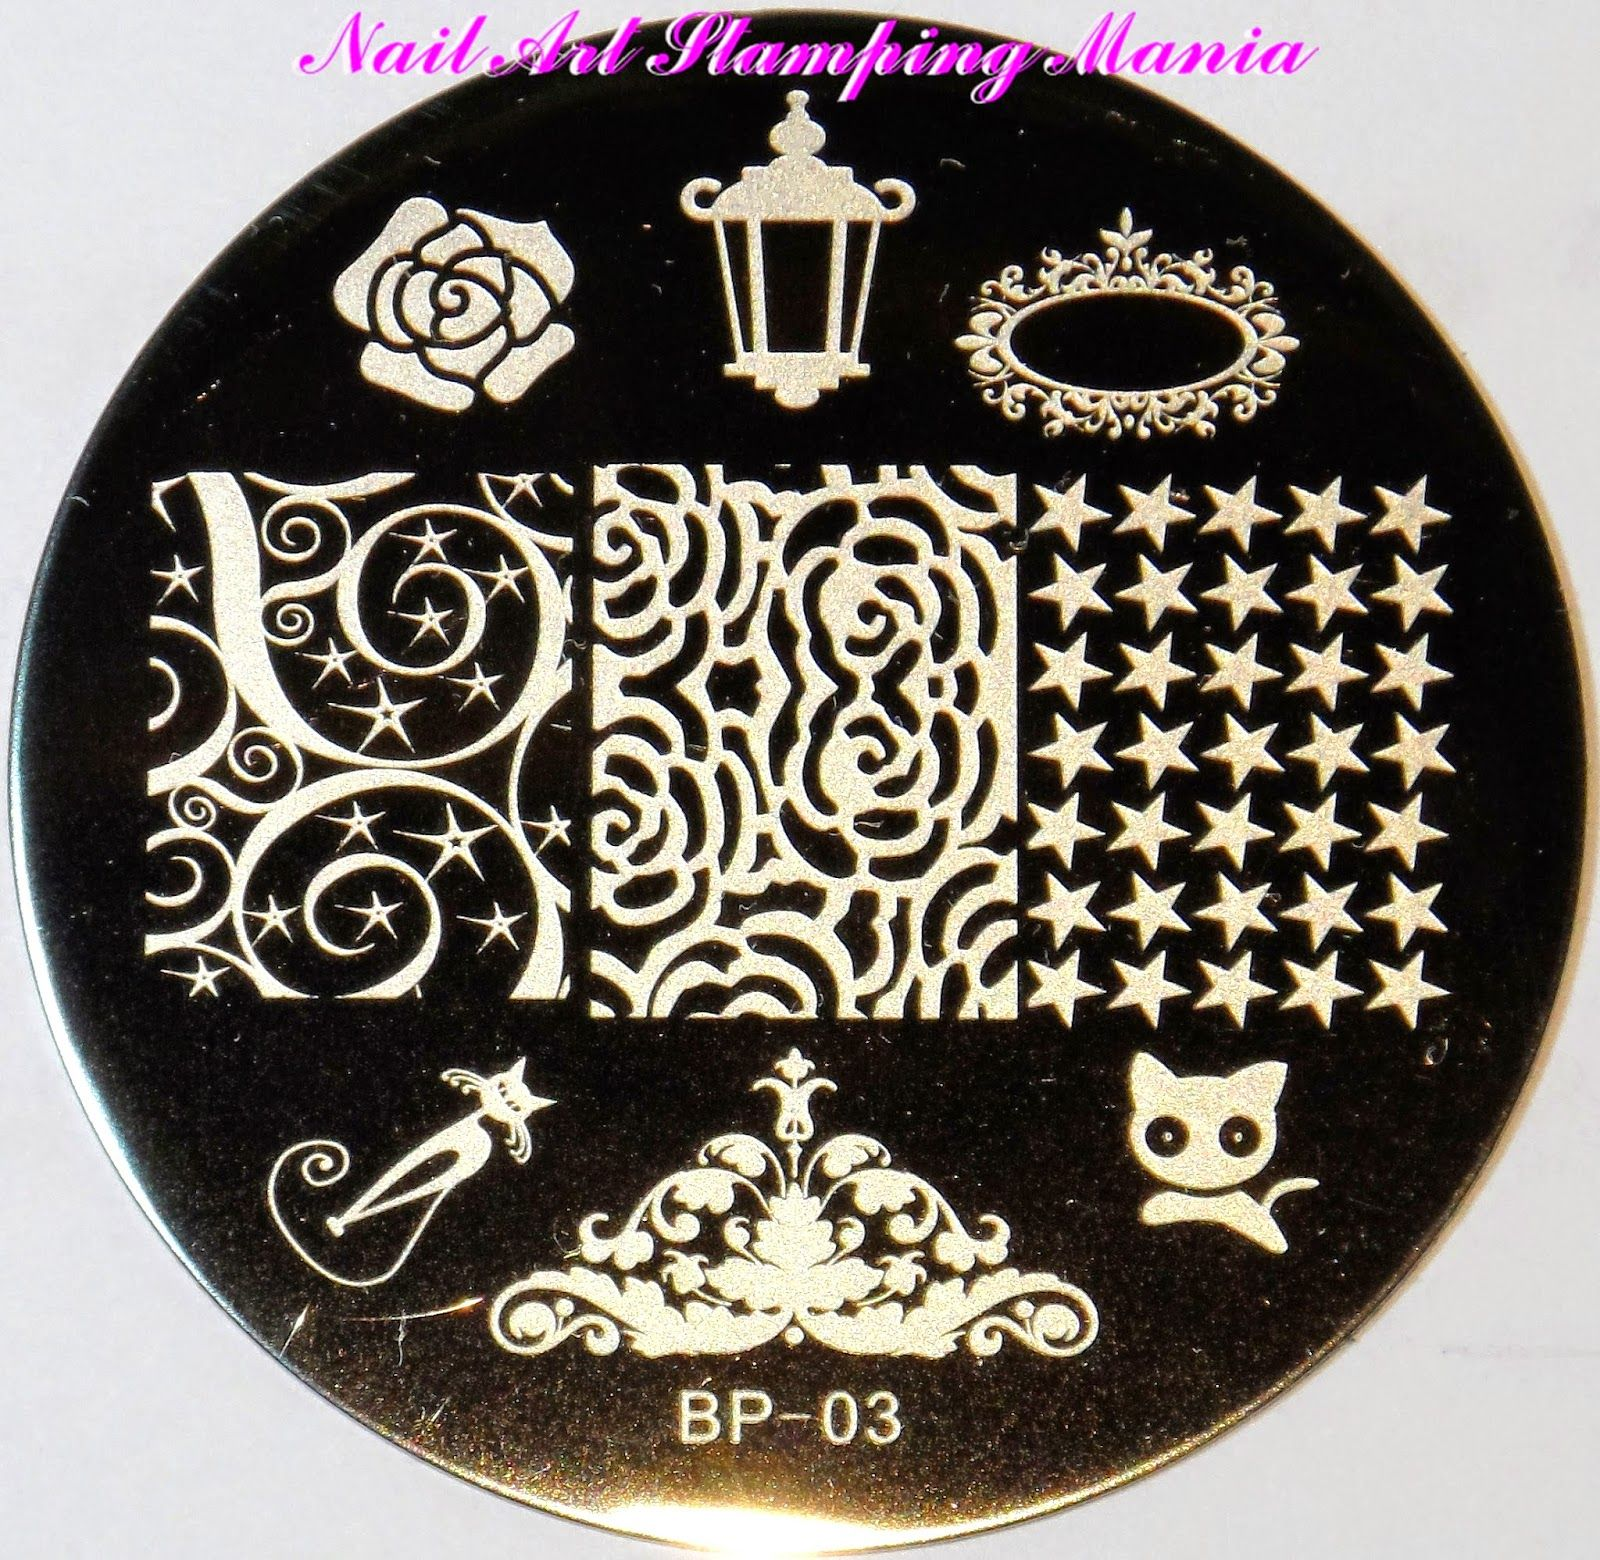 Nail Art Stamping Mania  http://nailartstampingmania.blogspot.it/search?updated-max=2015-01-20T19%3A31%3A00%2B01%3A00&max-results=1